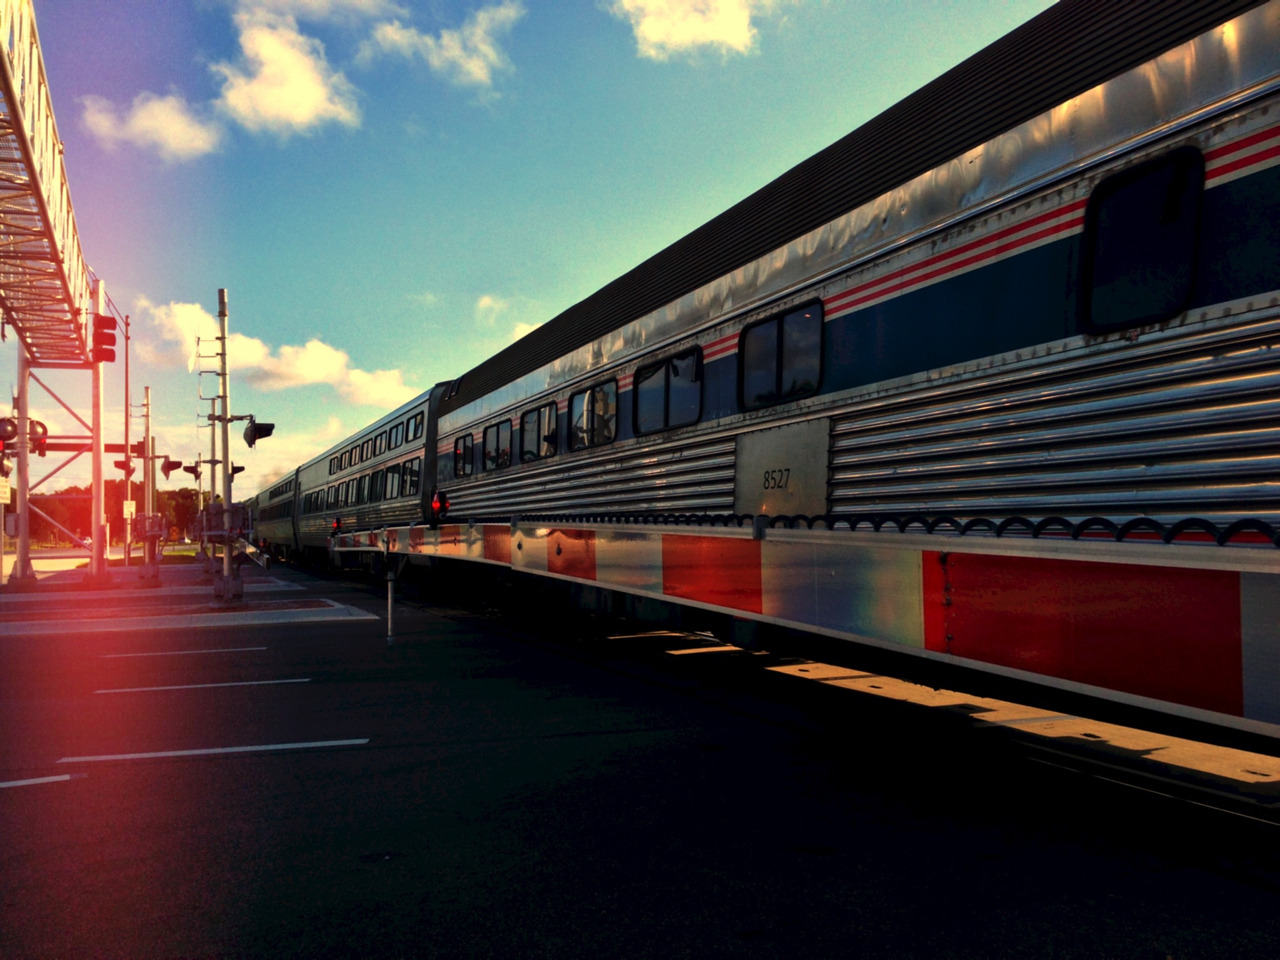 coolchris731:  Getting stopped by the train resulted in a great photo opportunity.